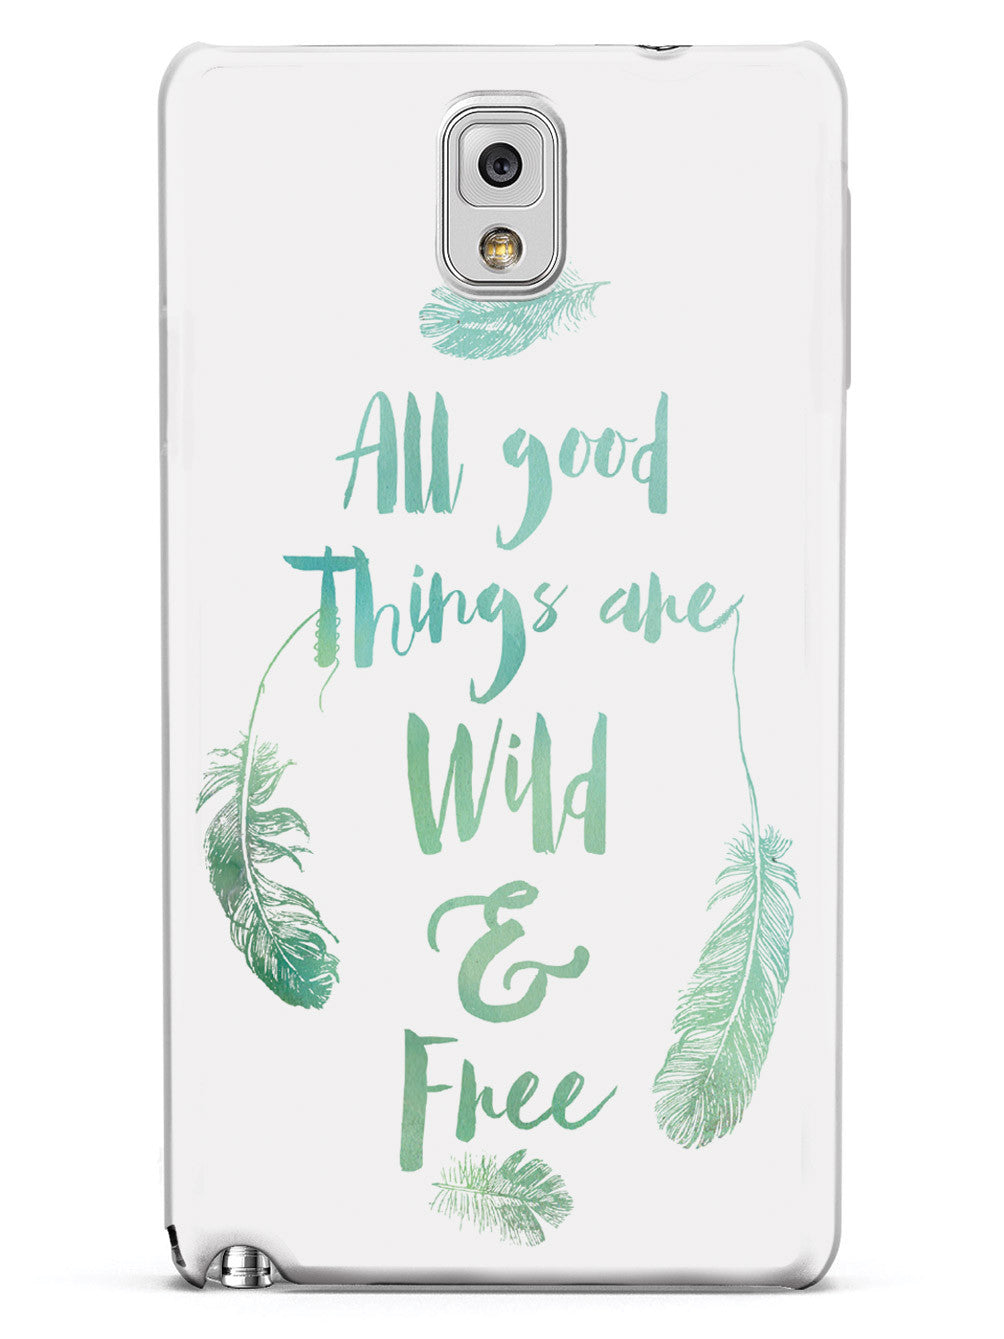 All Good Things Are Wild and Free Case